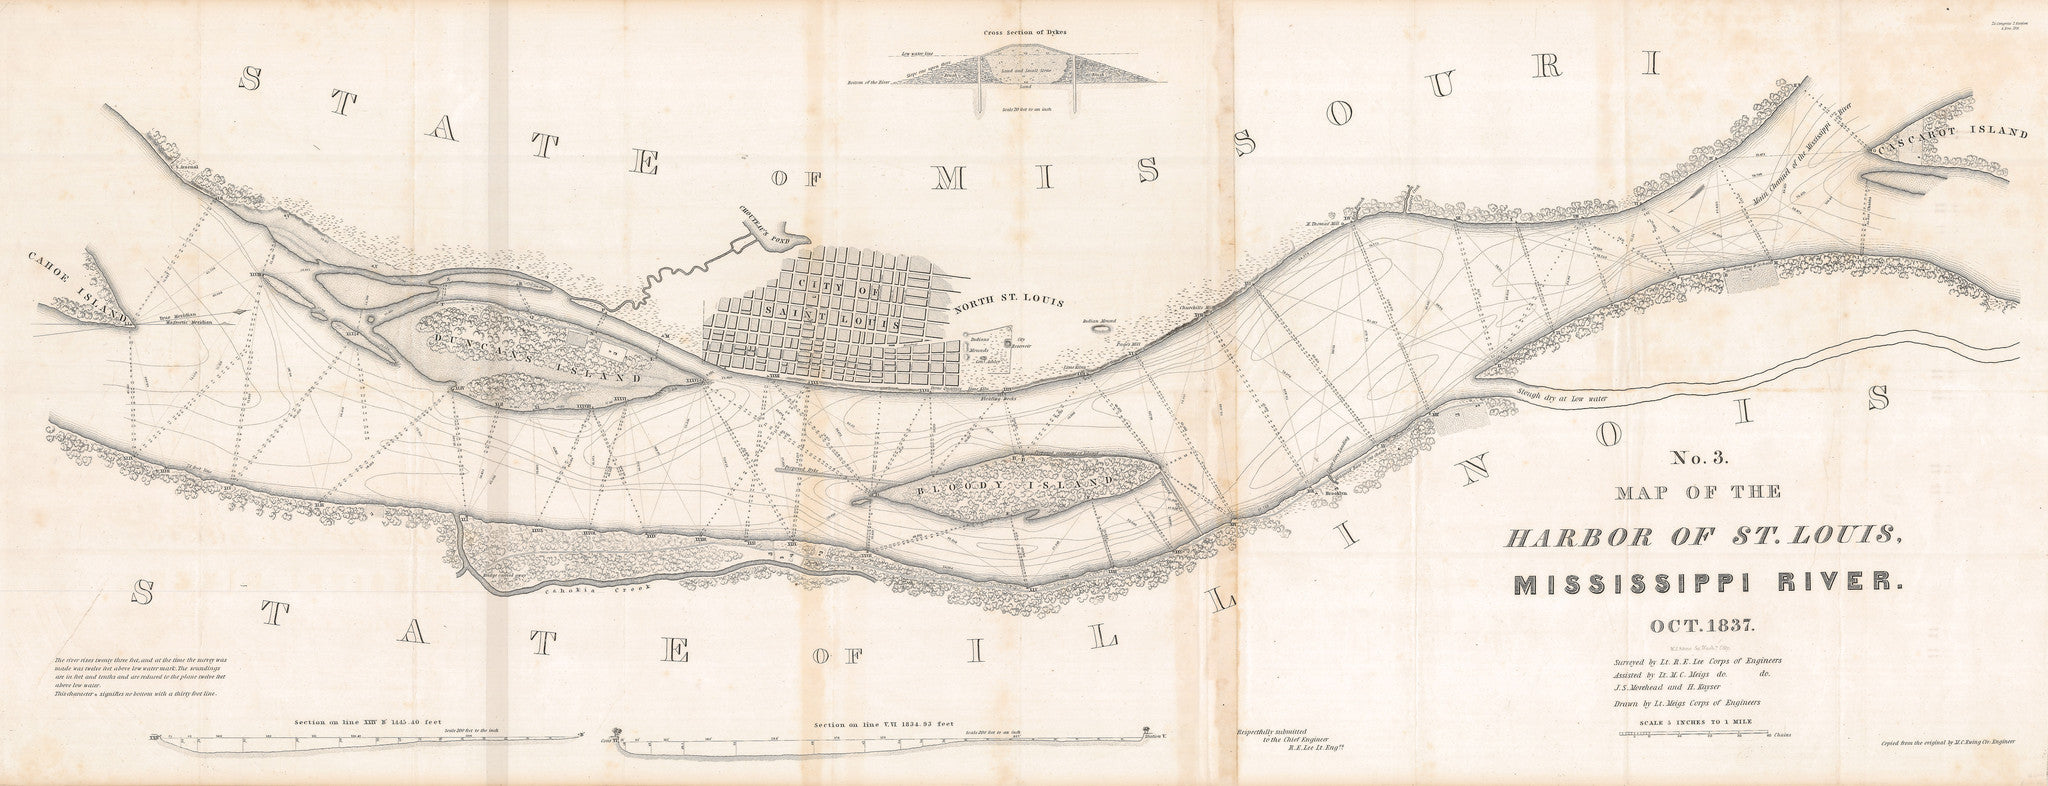 1837 No. 3 Map of the Harbor of St. Louis Mississippi River